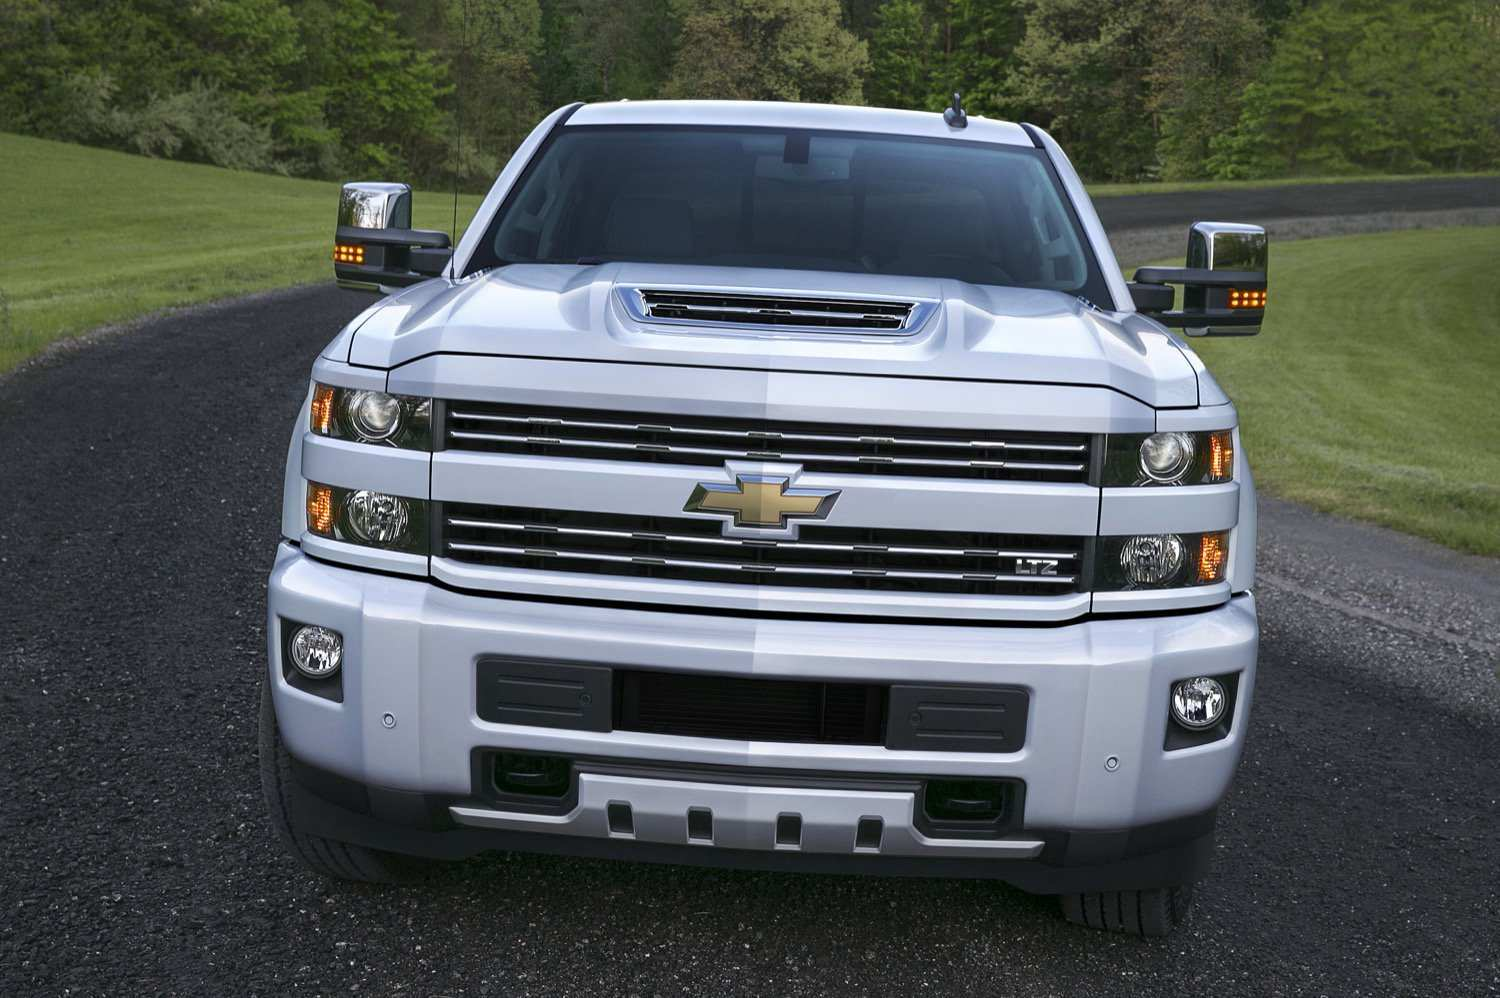 31 Great 2019 Chevrolet Silverado Diesel Rumors by 2019 Chevrolet Silverado Diesel